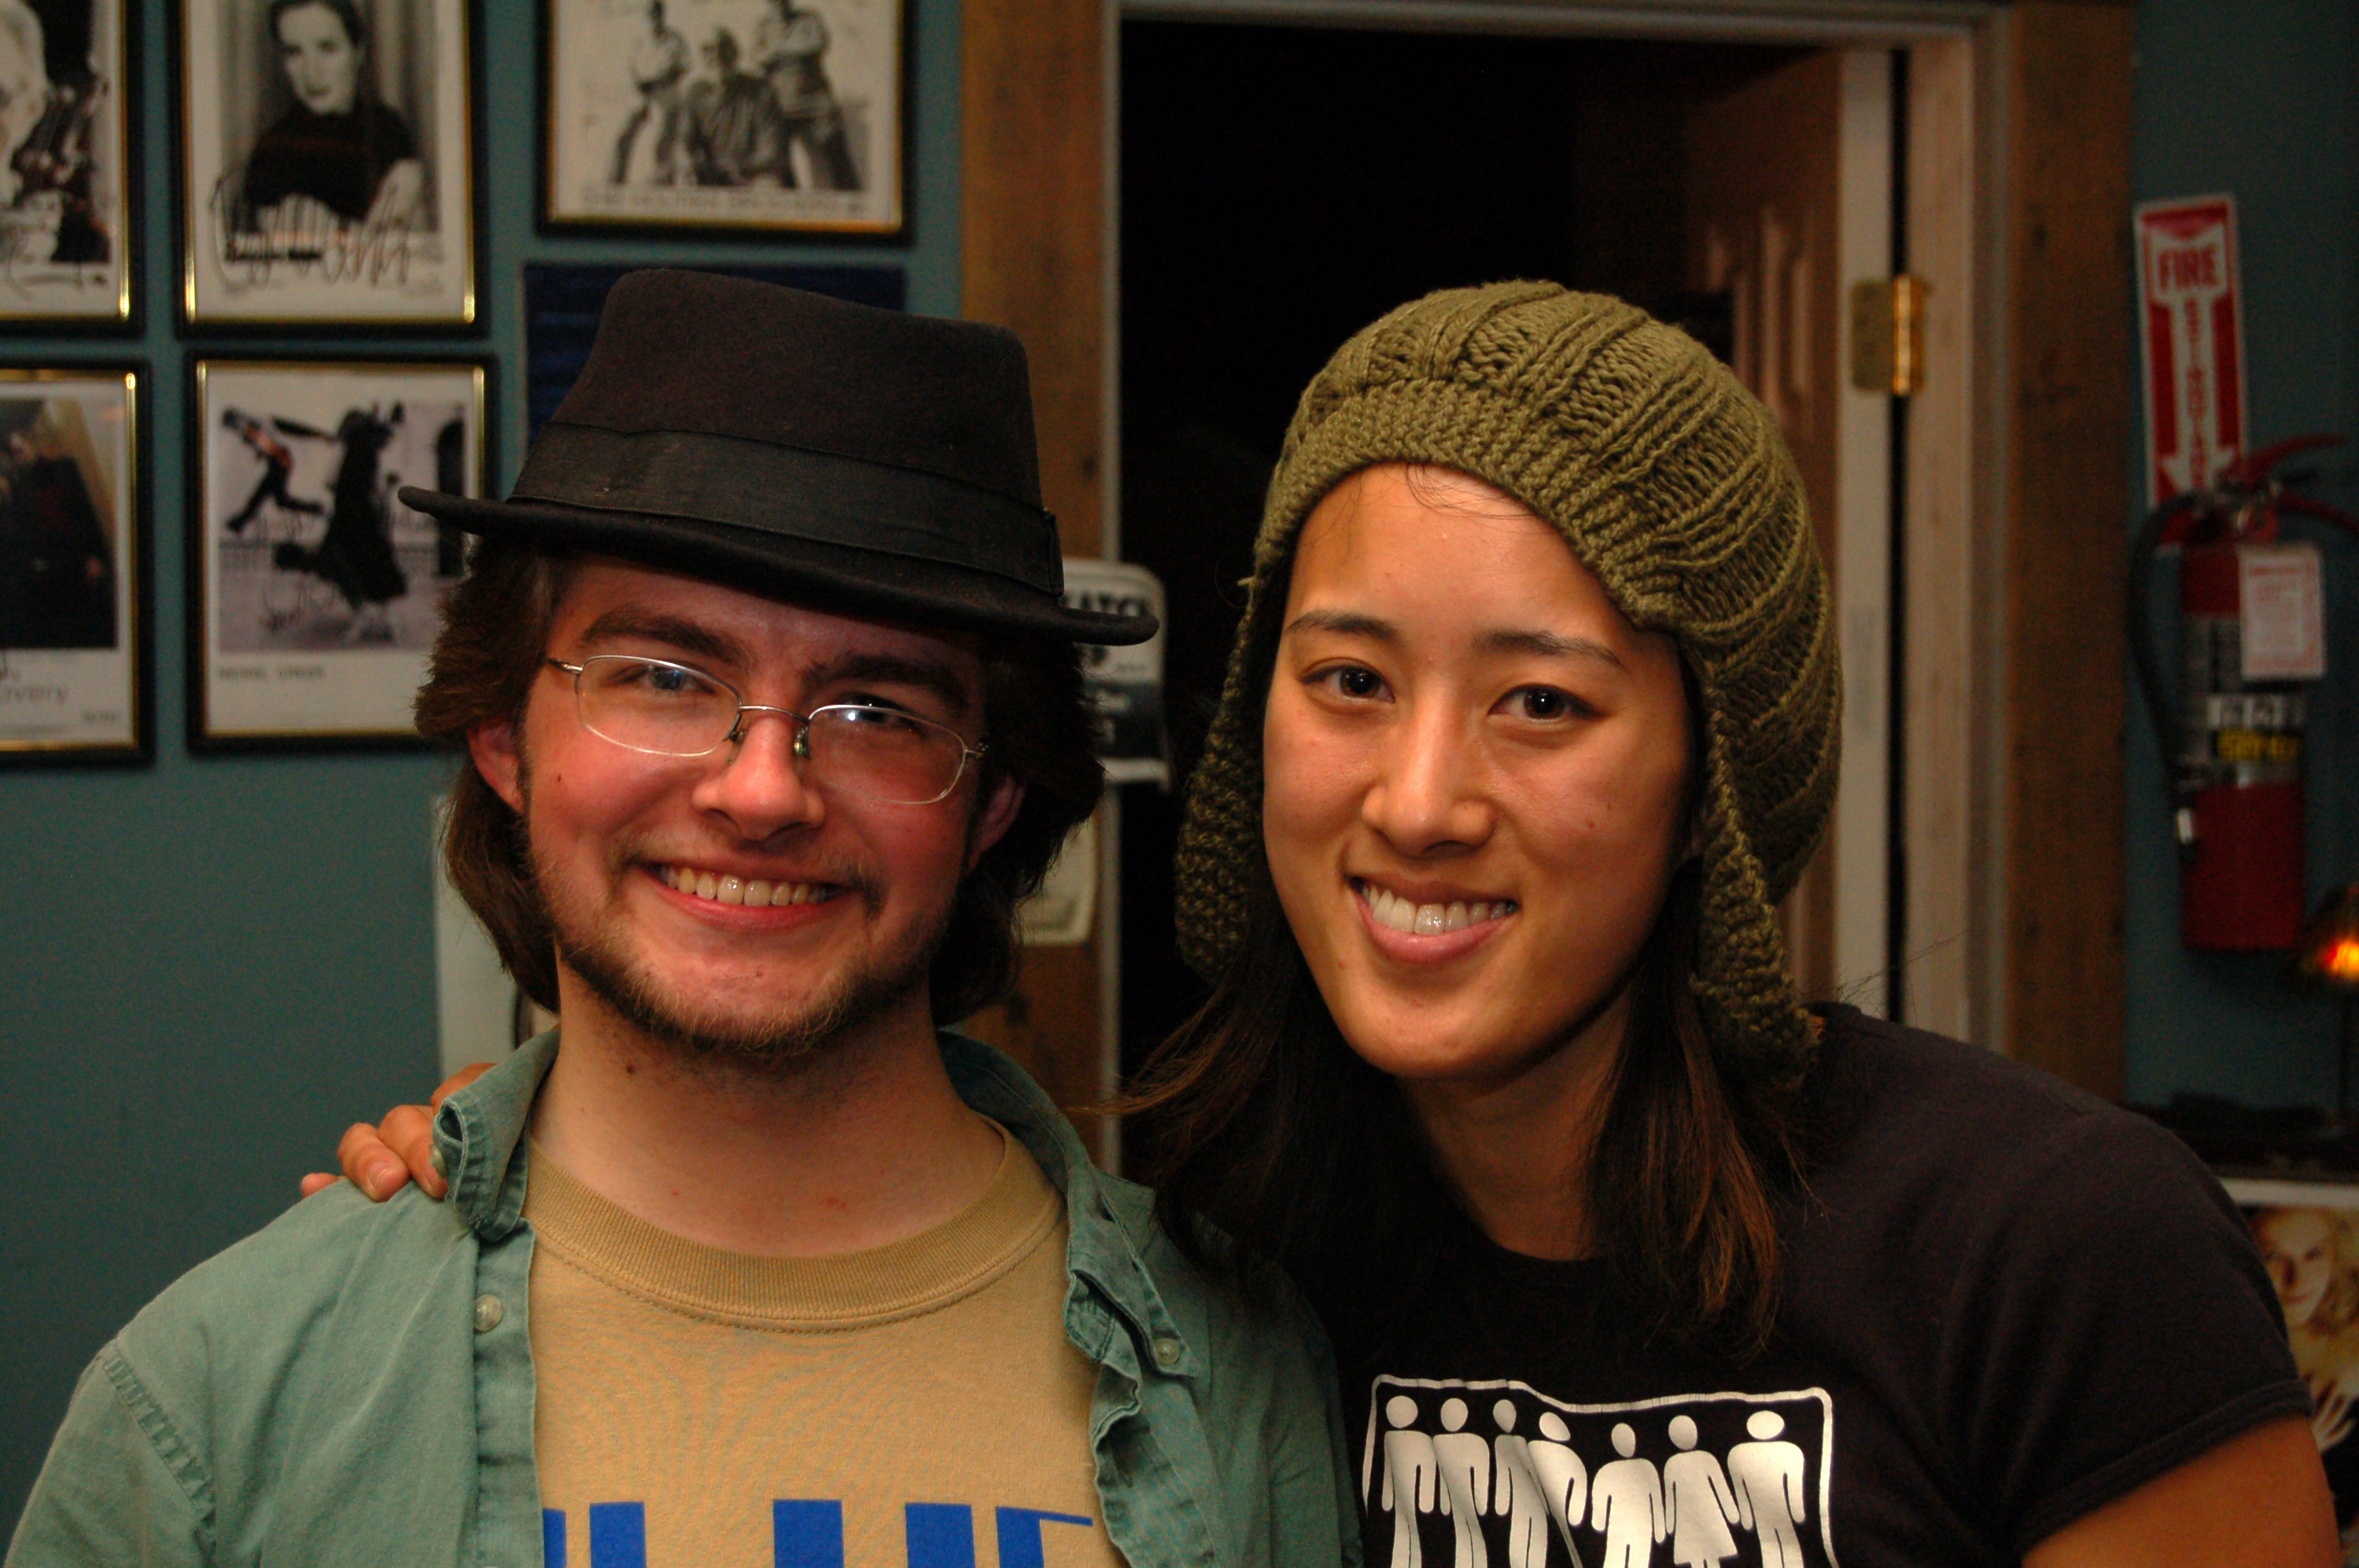 Adam with Vienna Teng at Mississippi Studios in 2007